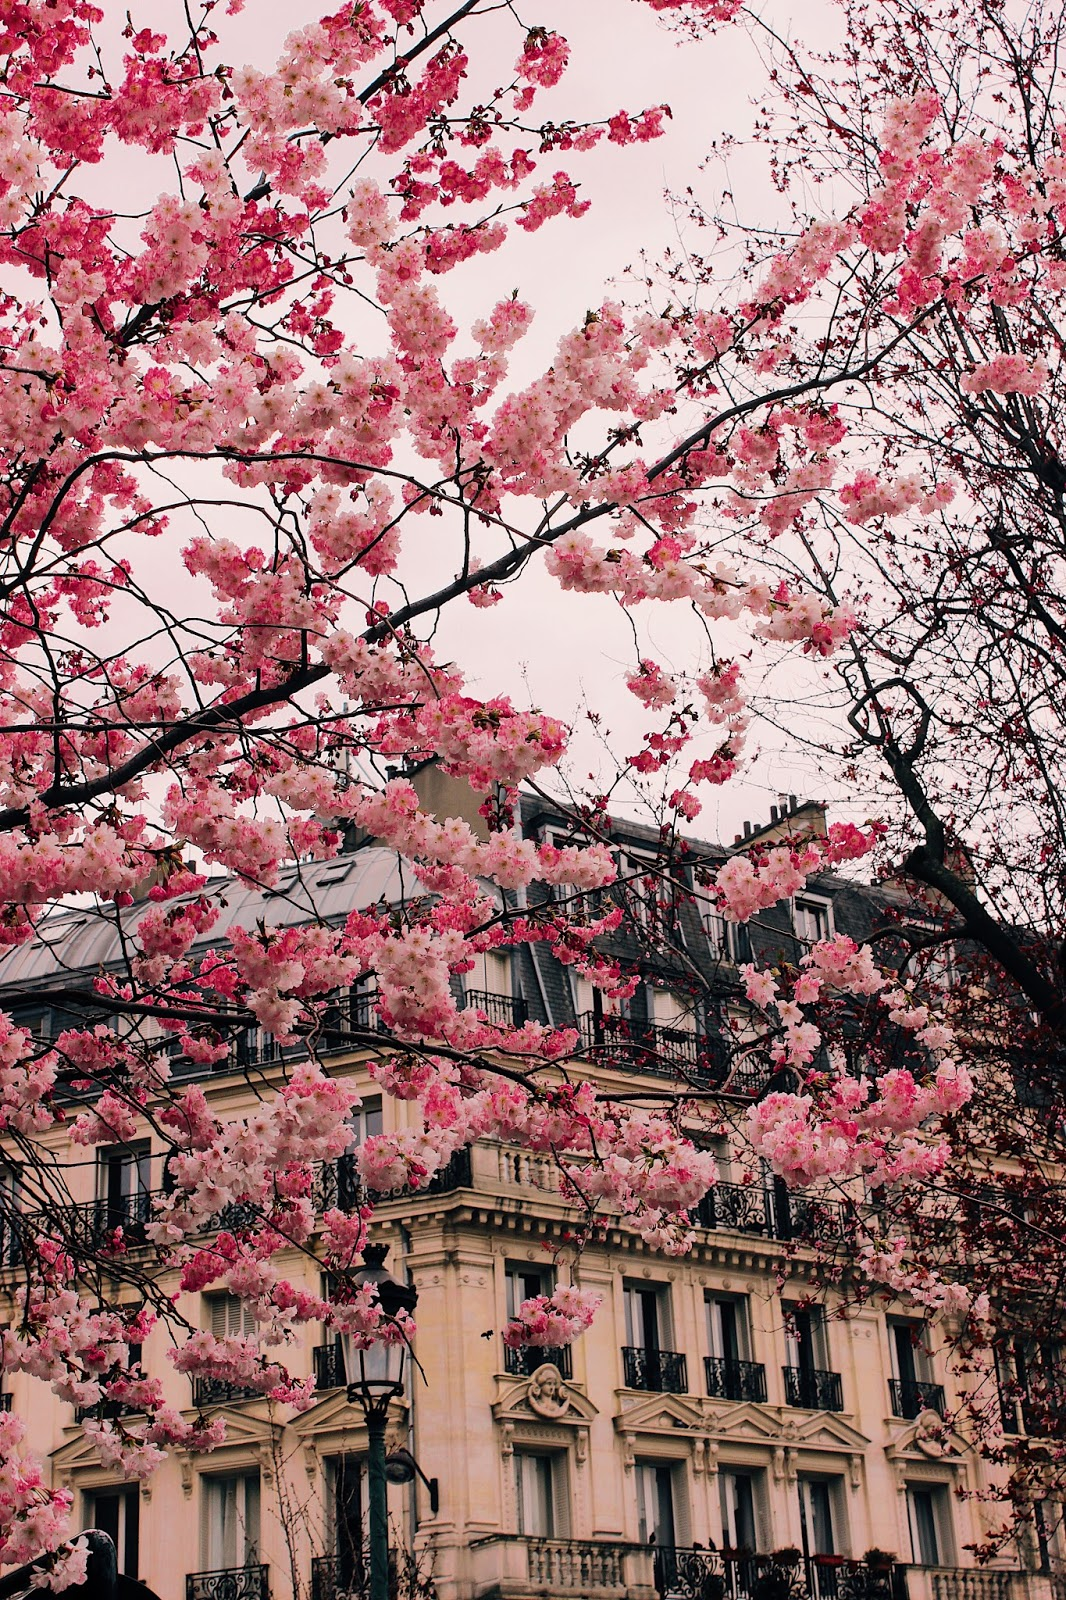 instagram guide to paris, must shot pics paris, where to take pictures in paris, what to capture in paris, paris, paris travel guide, paris balcony, paris architecture, paris pic, paris building, spring in paris, blossoms in paris, paris flowers